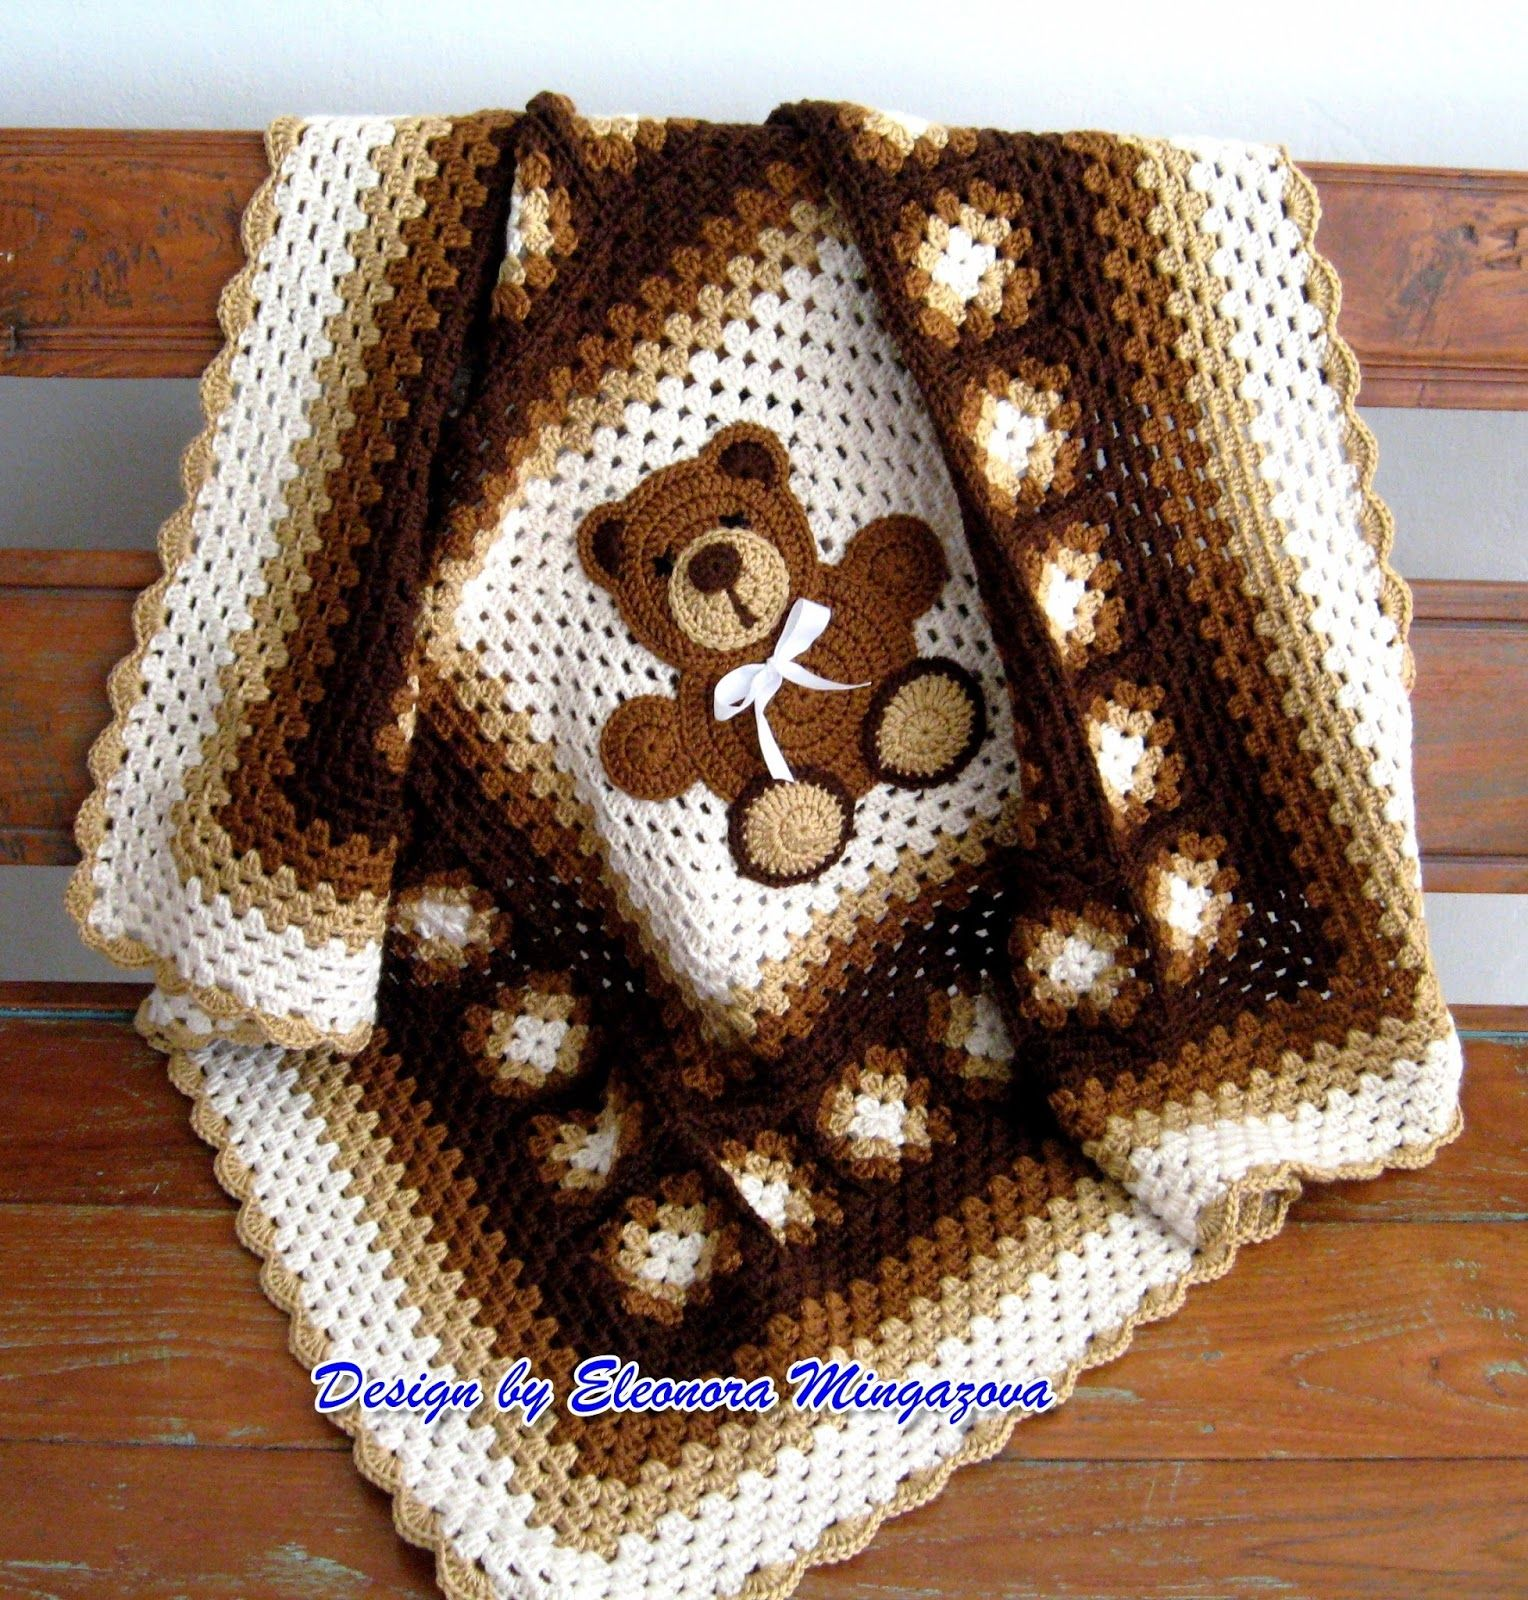 Pdf adorable crochet pattern to make your own crochet teddy bear pdf adorable crochet pattern to make your own crochet teddy bear blanket afghan throw bankloansurffo Images